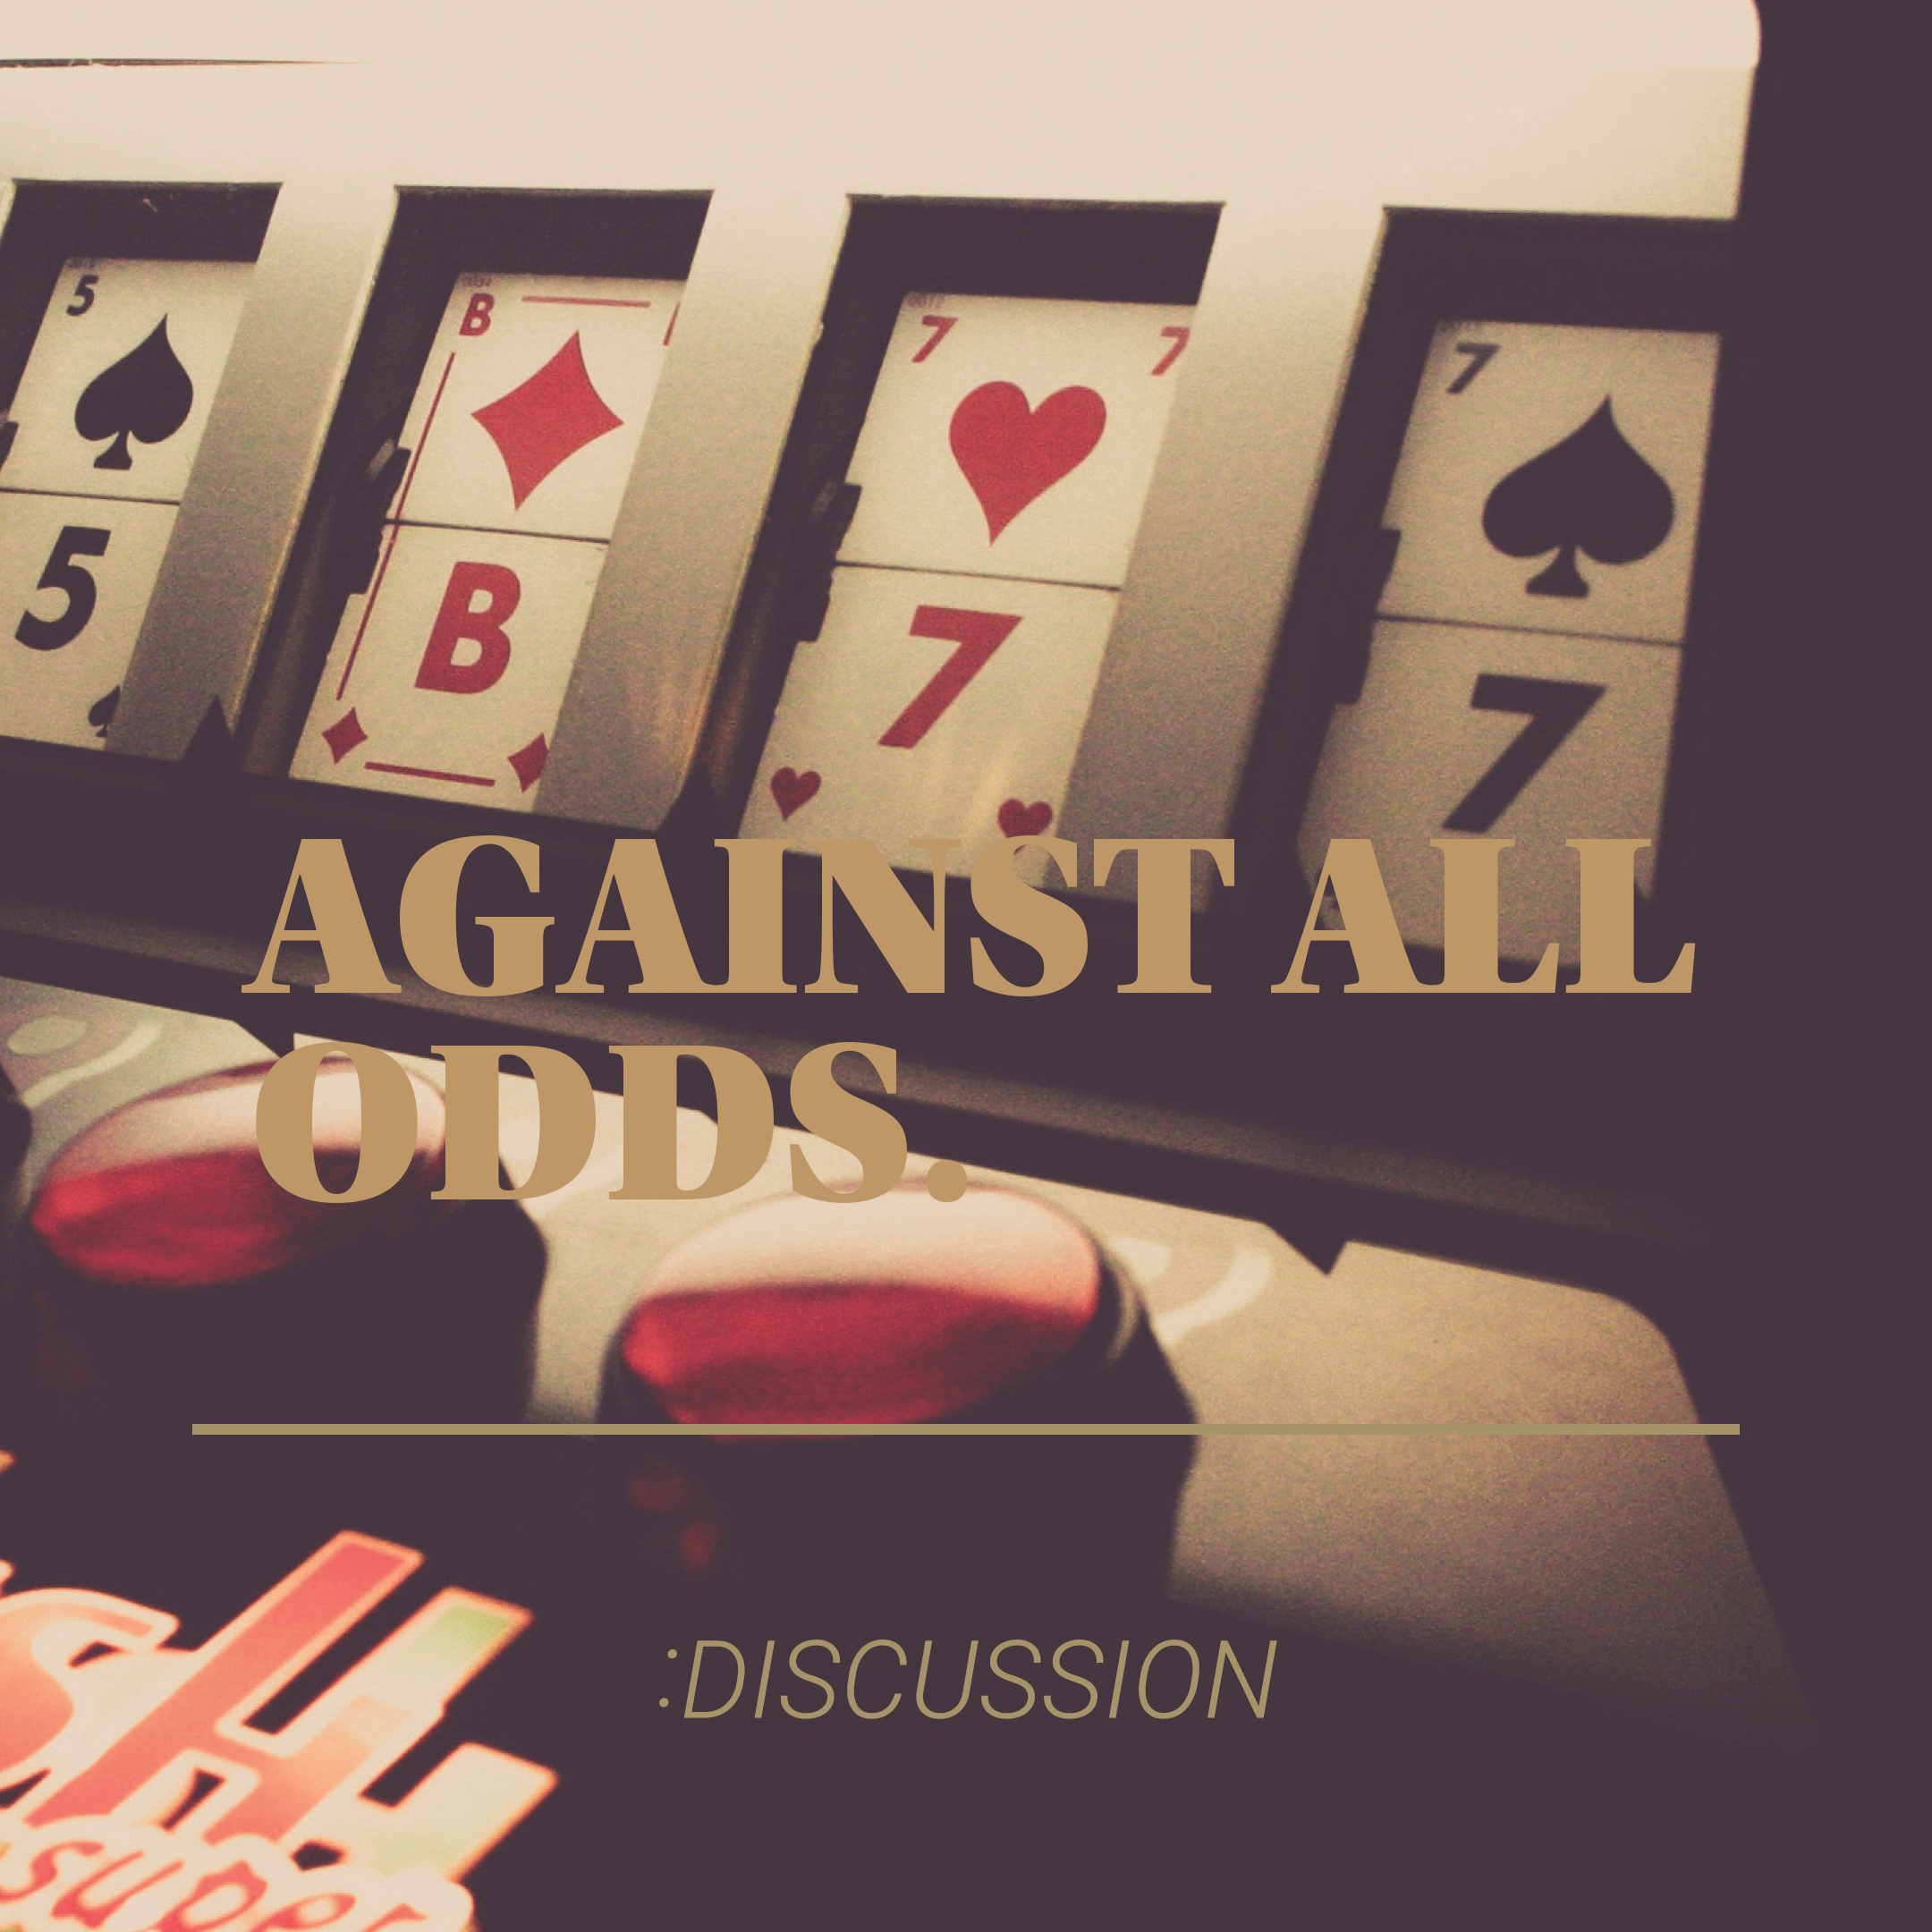 against all odds Discussion.png